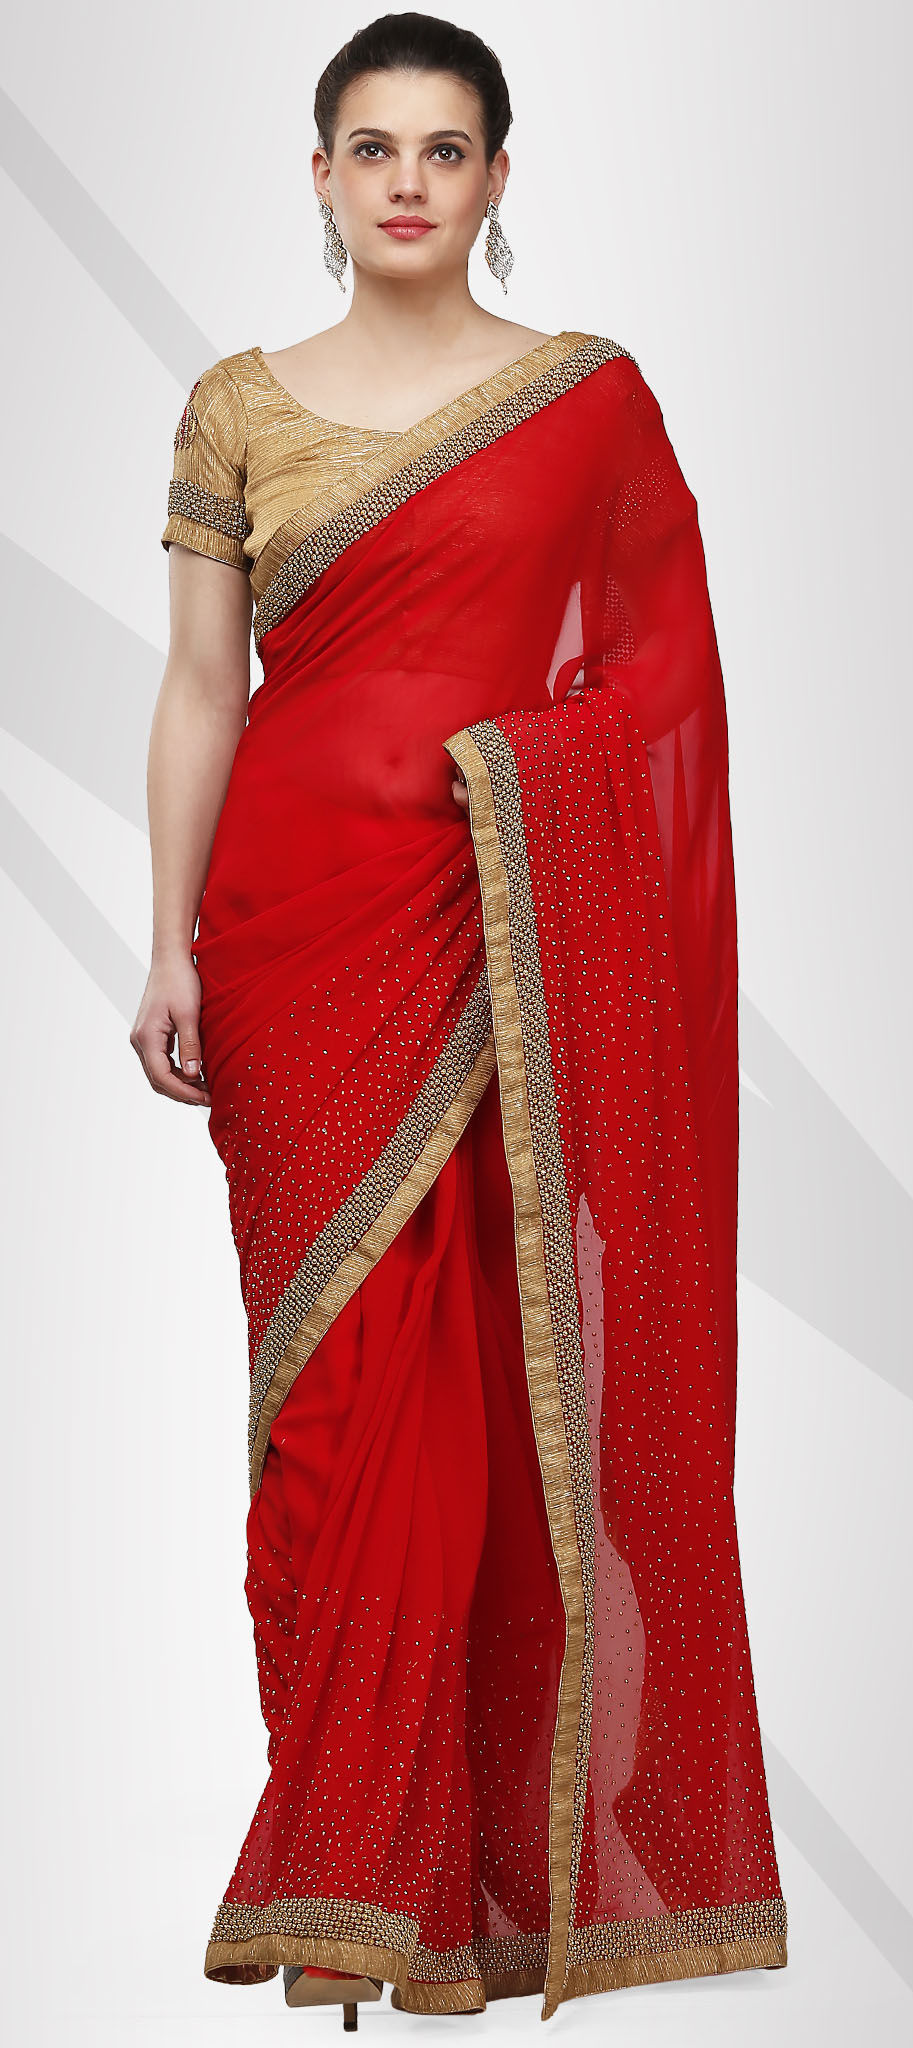 d5d7776d74b 725046  Red and Maroon color family Bridal Wedding Sarees with ...